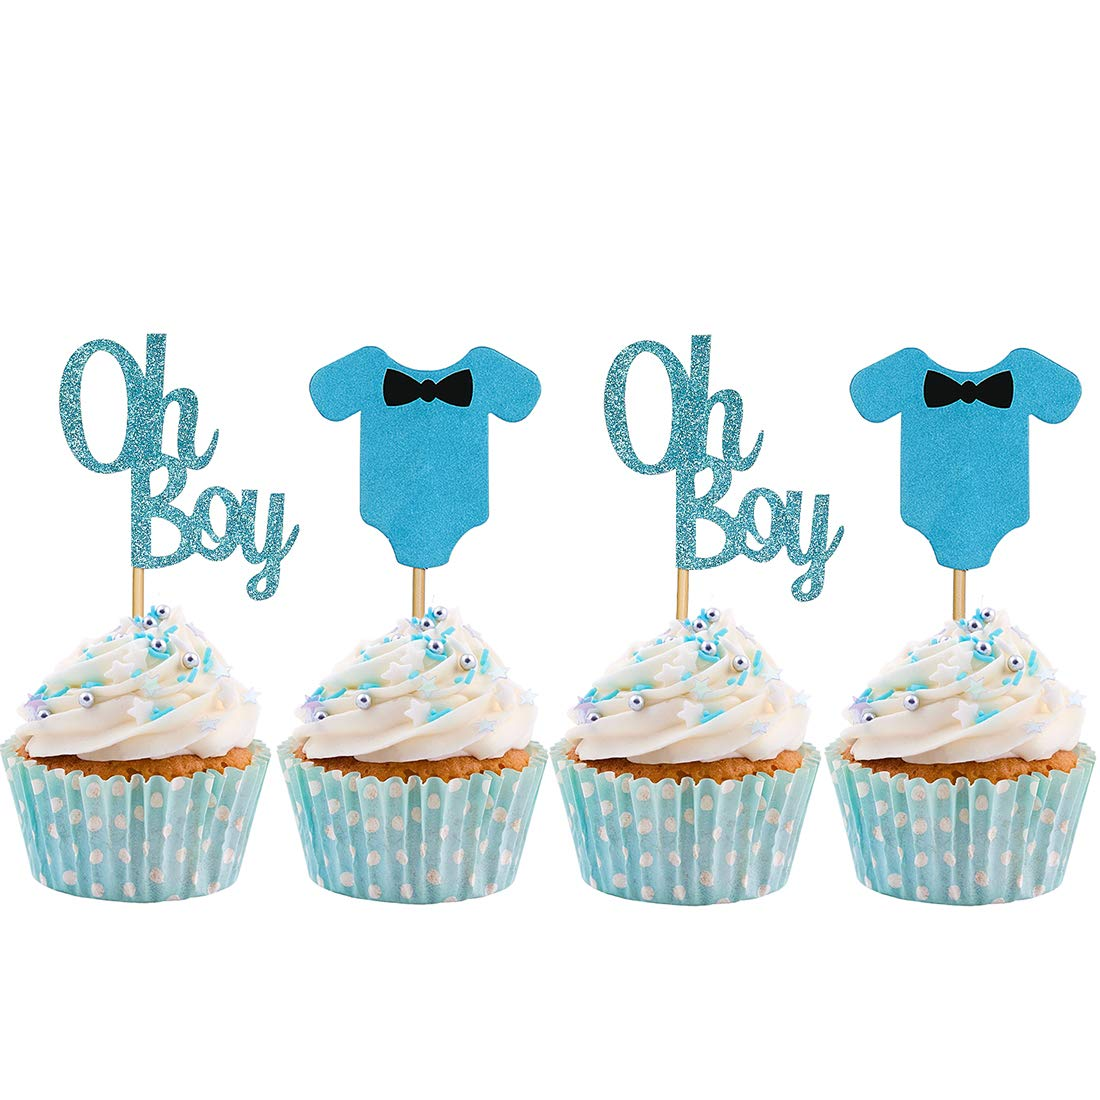 Baby Shower Cupcake Toppers for Cake Boy Complete Free Ranking TOP15 Shipping Cu Blue Jumpsuits